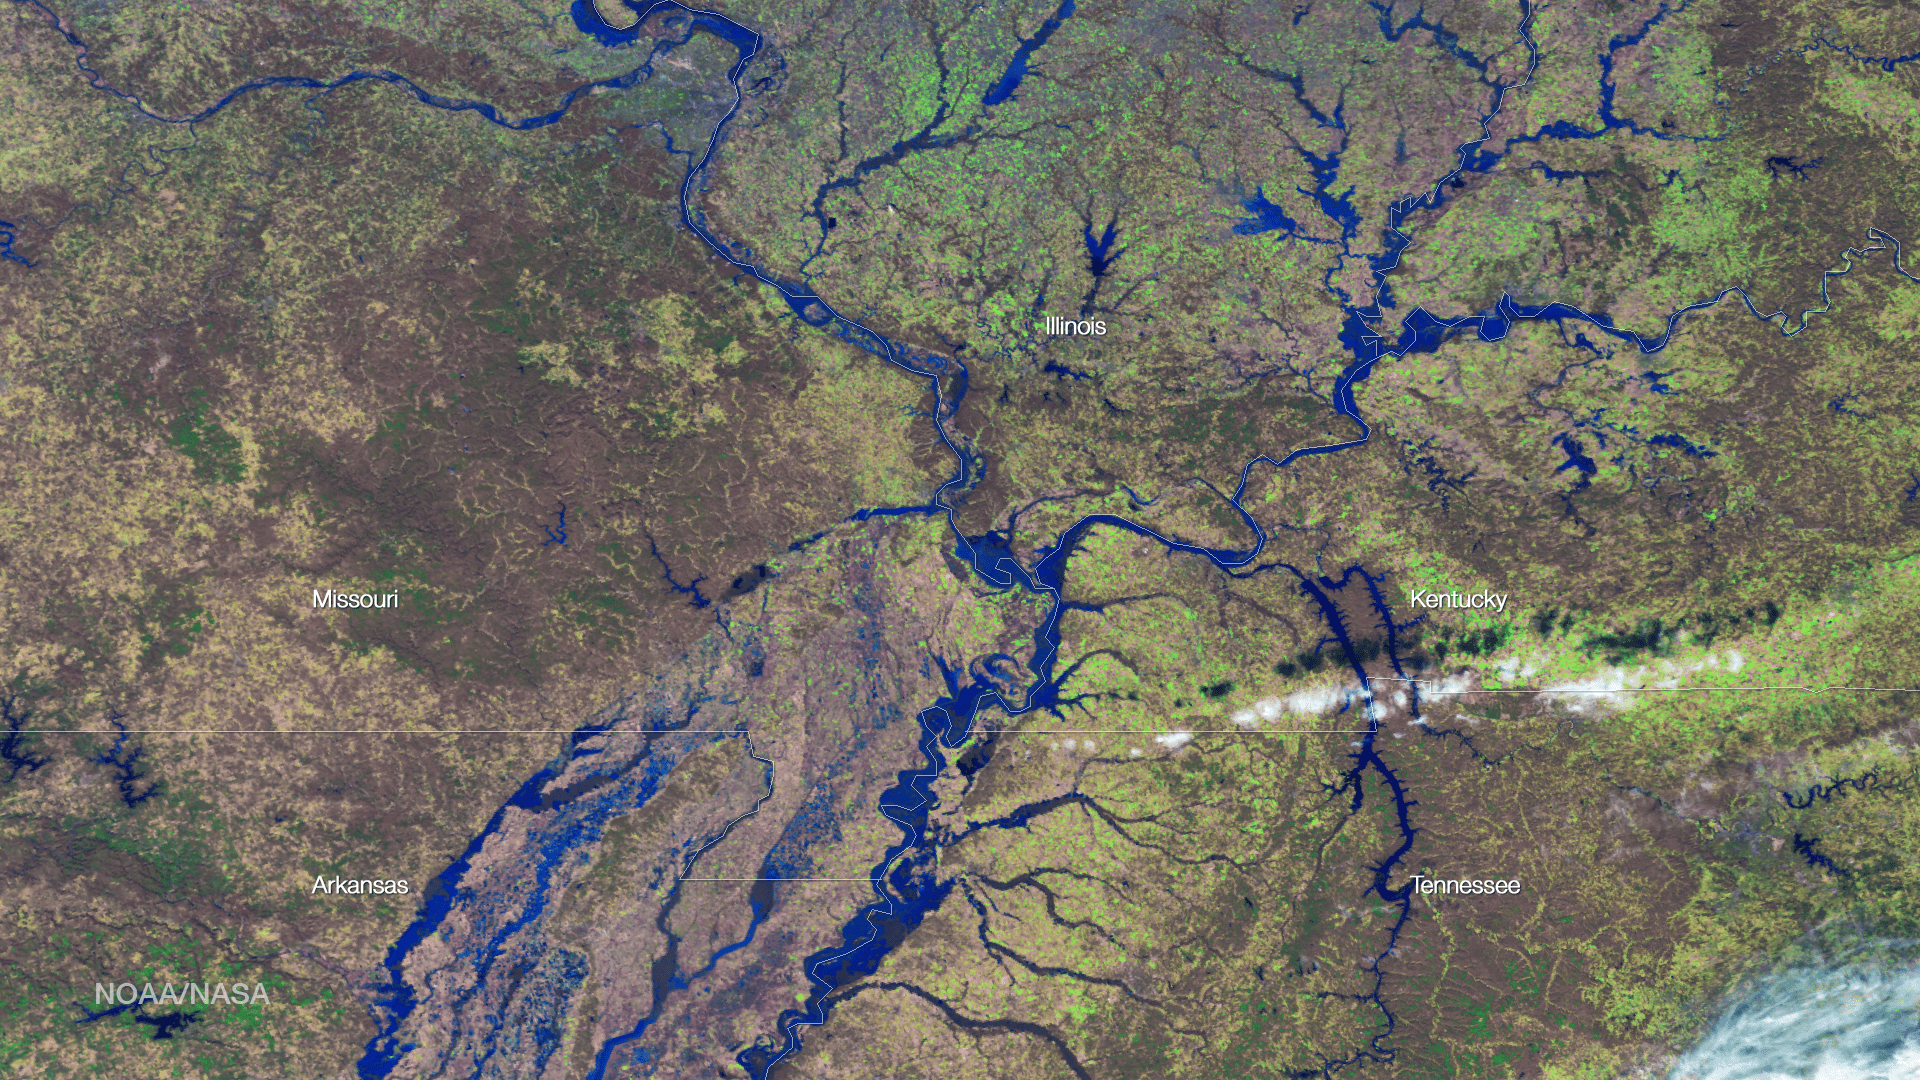 Flooding Continues Along Mississippi River Earth Imaging Journal - Noaa world satellite map